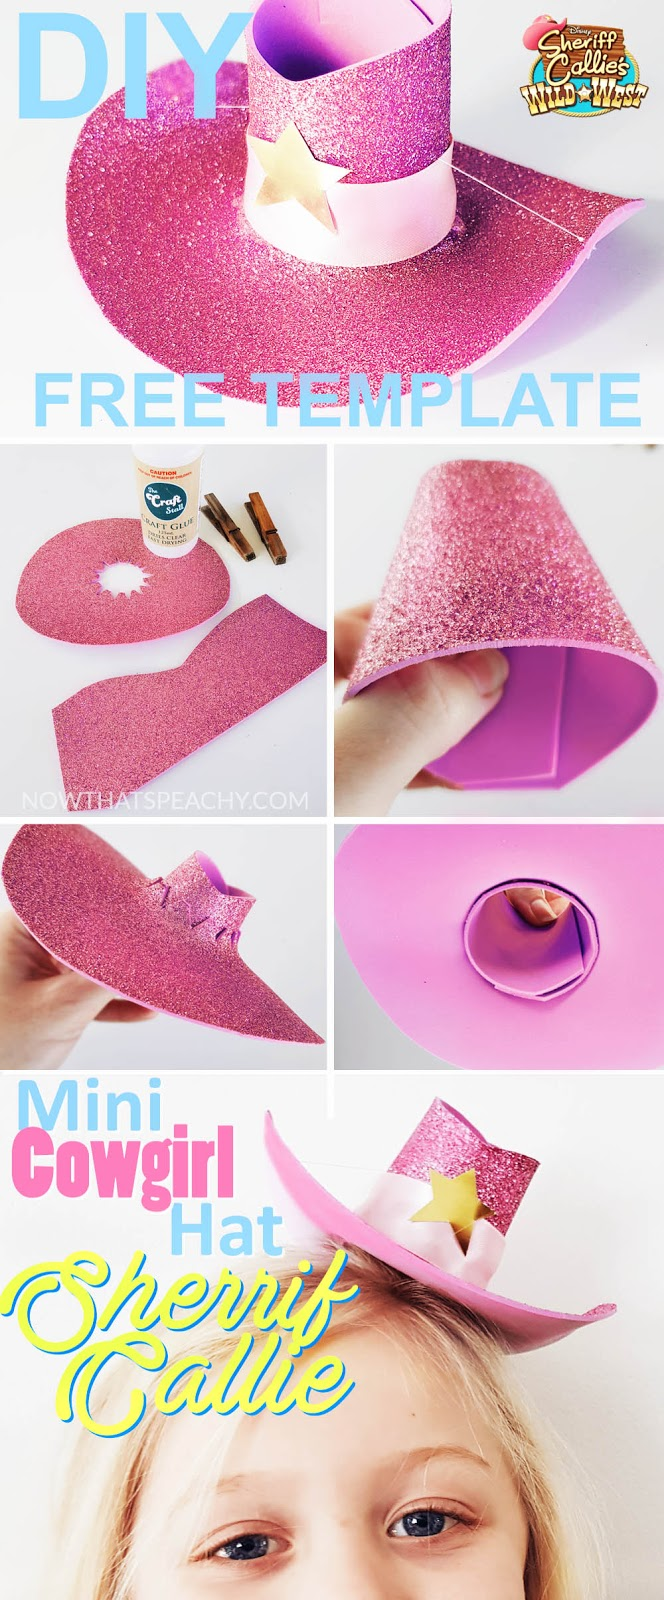 How to make a Mini Cowgirl   Cowboy Hat DIY  24469c76654a